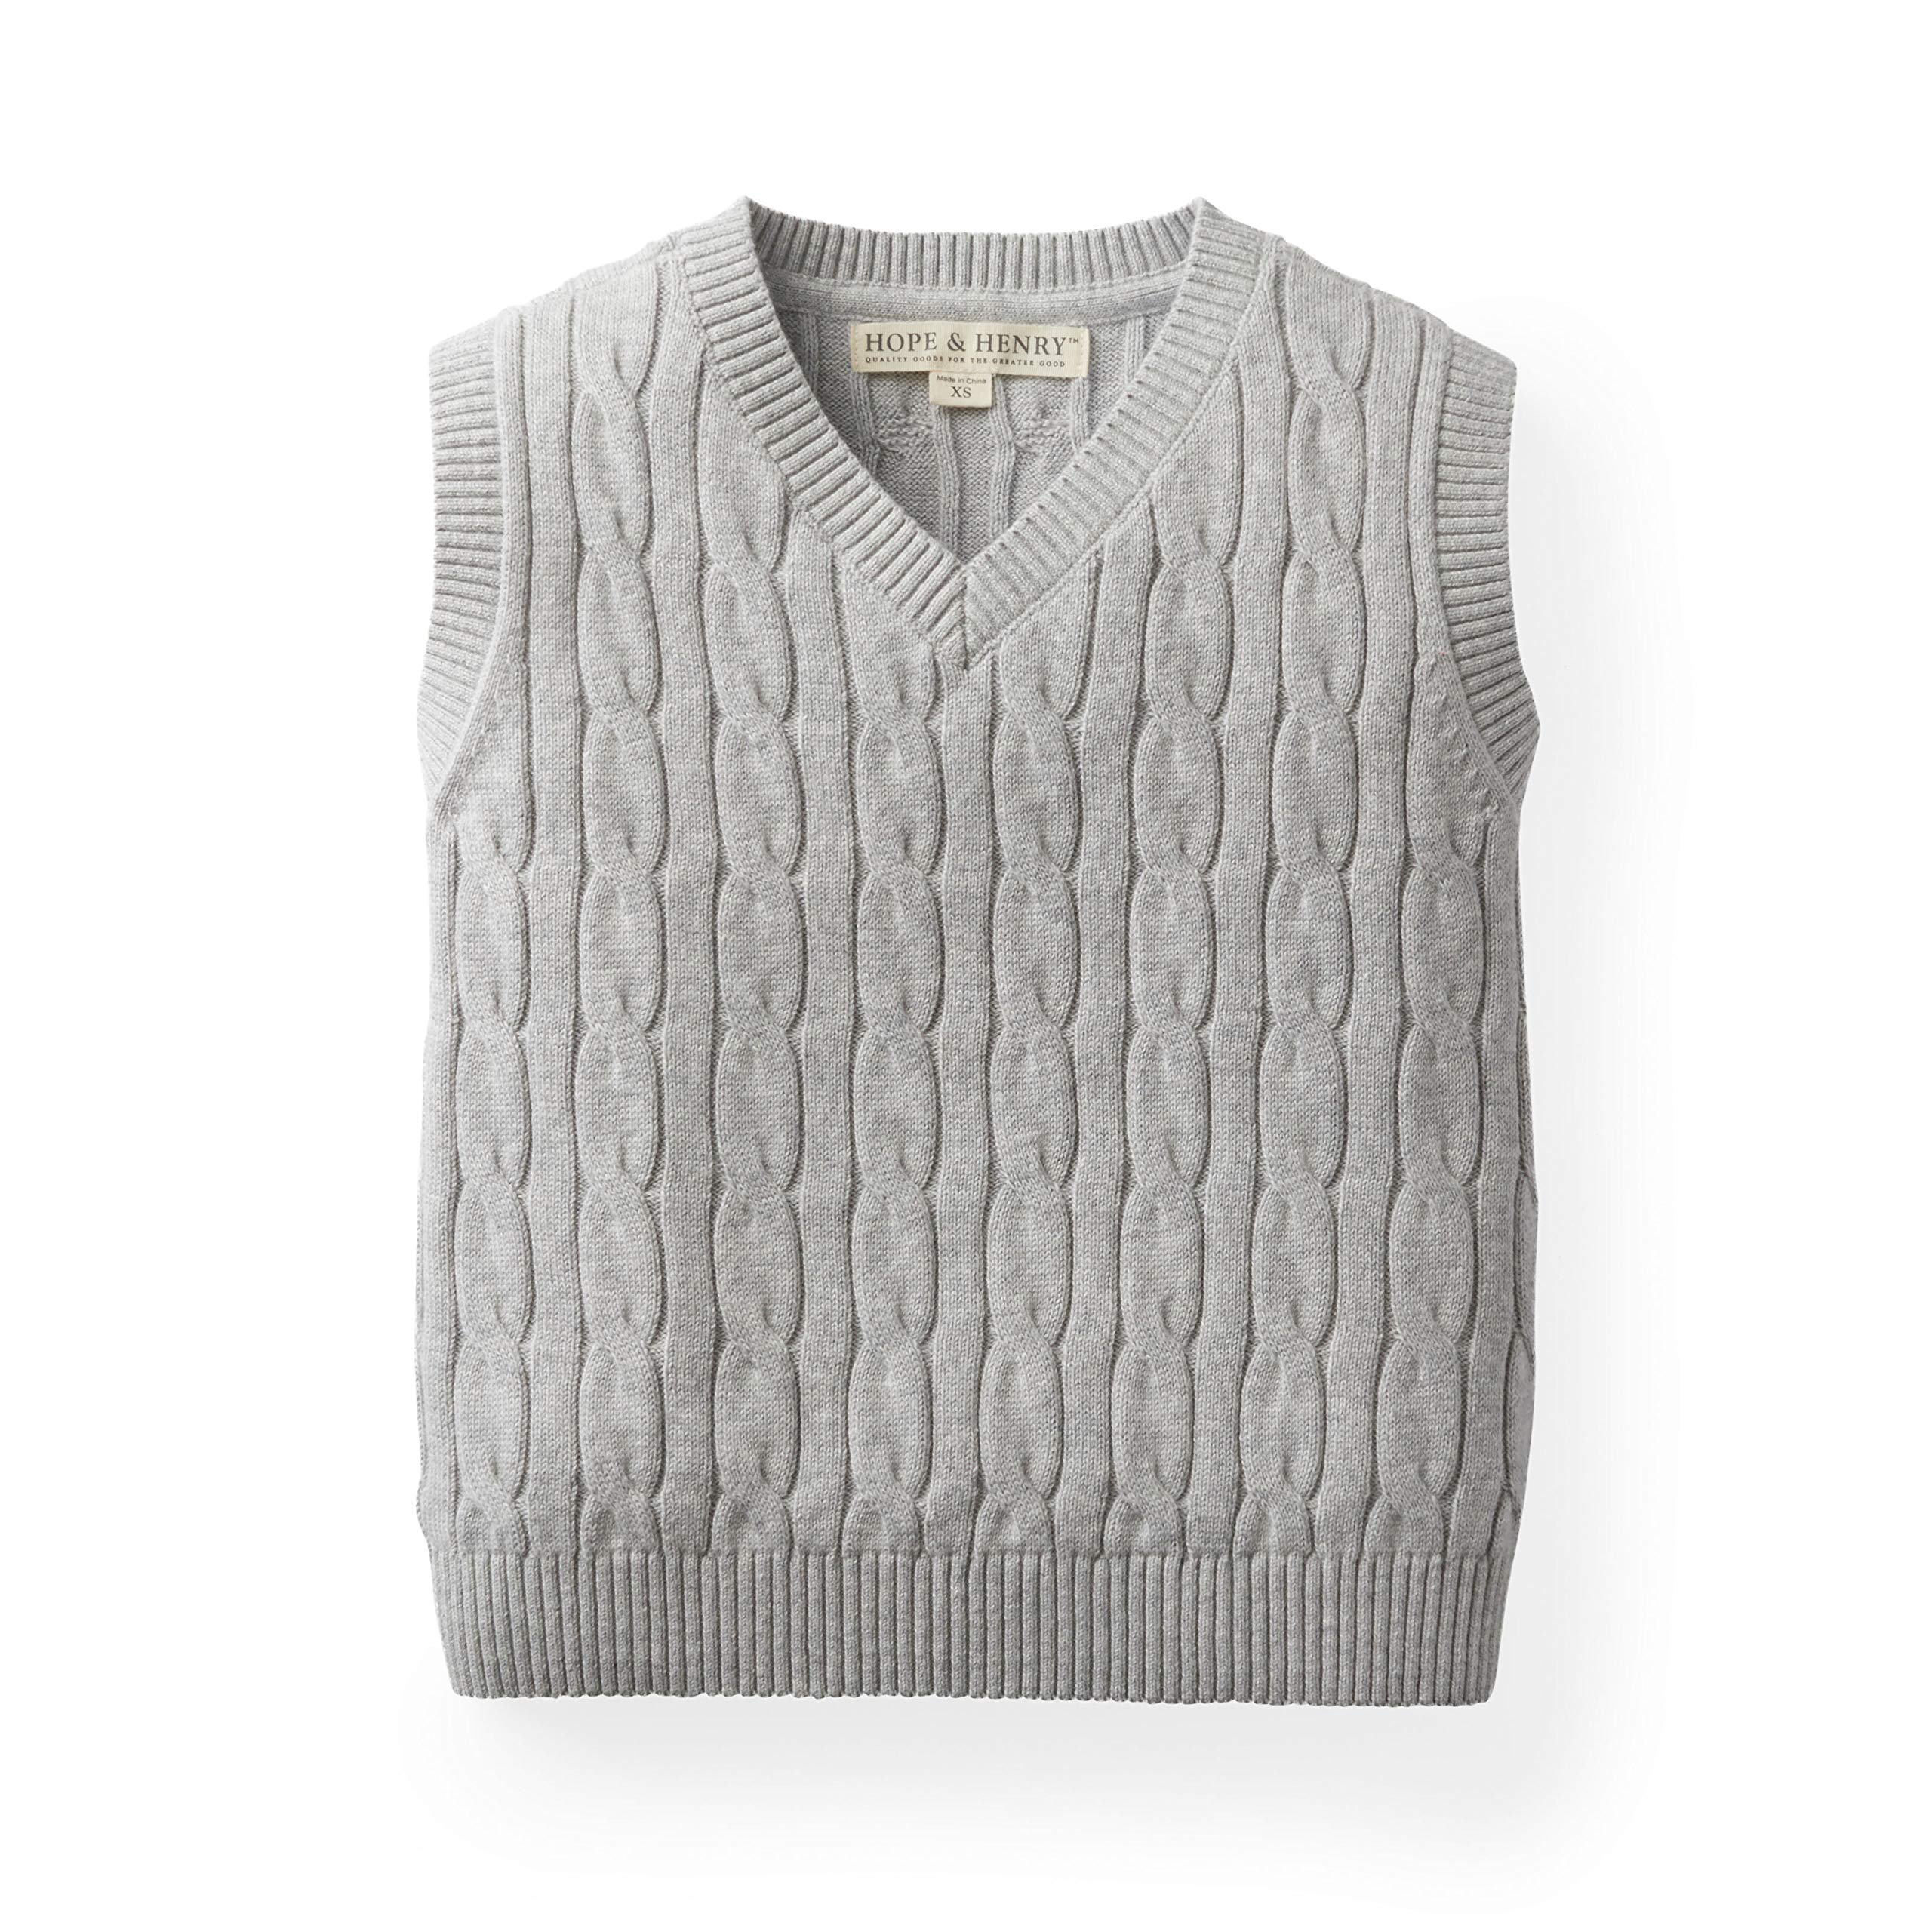 Hope & Henry Boys' Grey Cable Sweater Vest Made with Organic Cotton